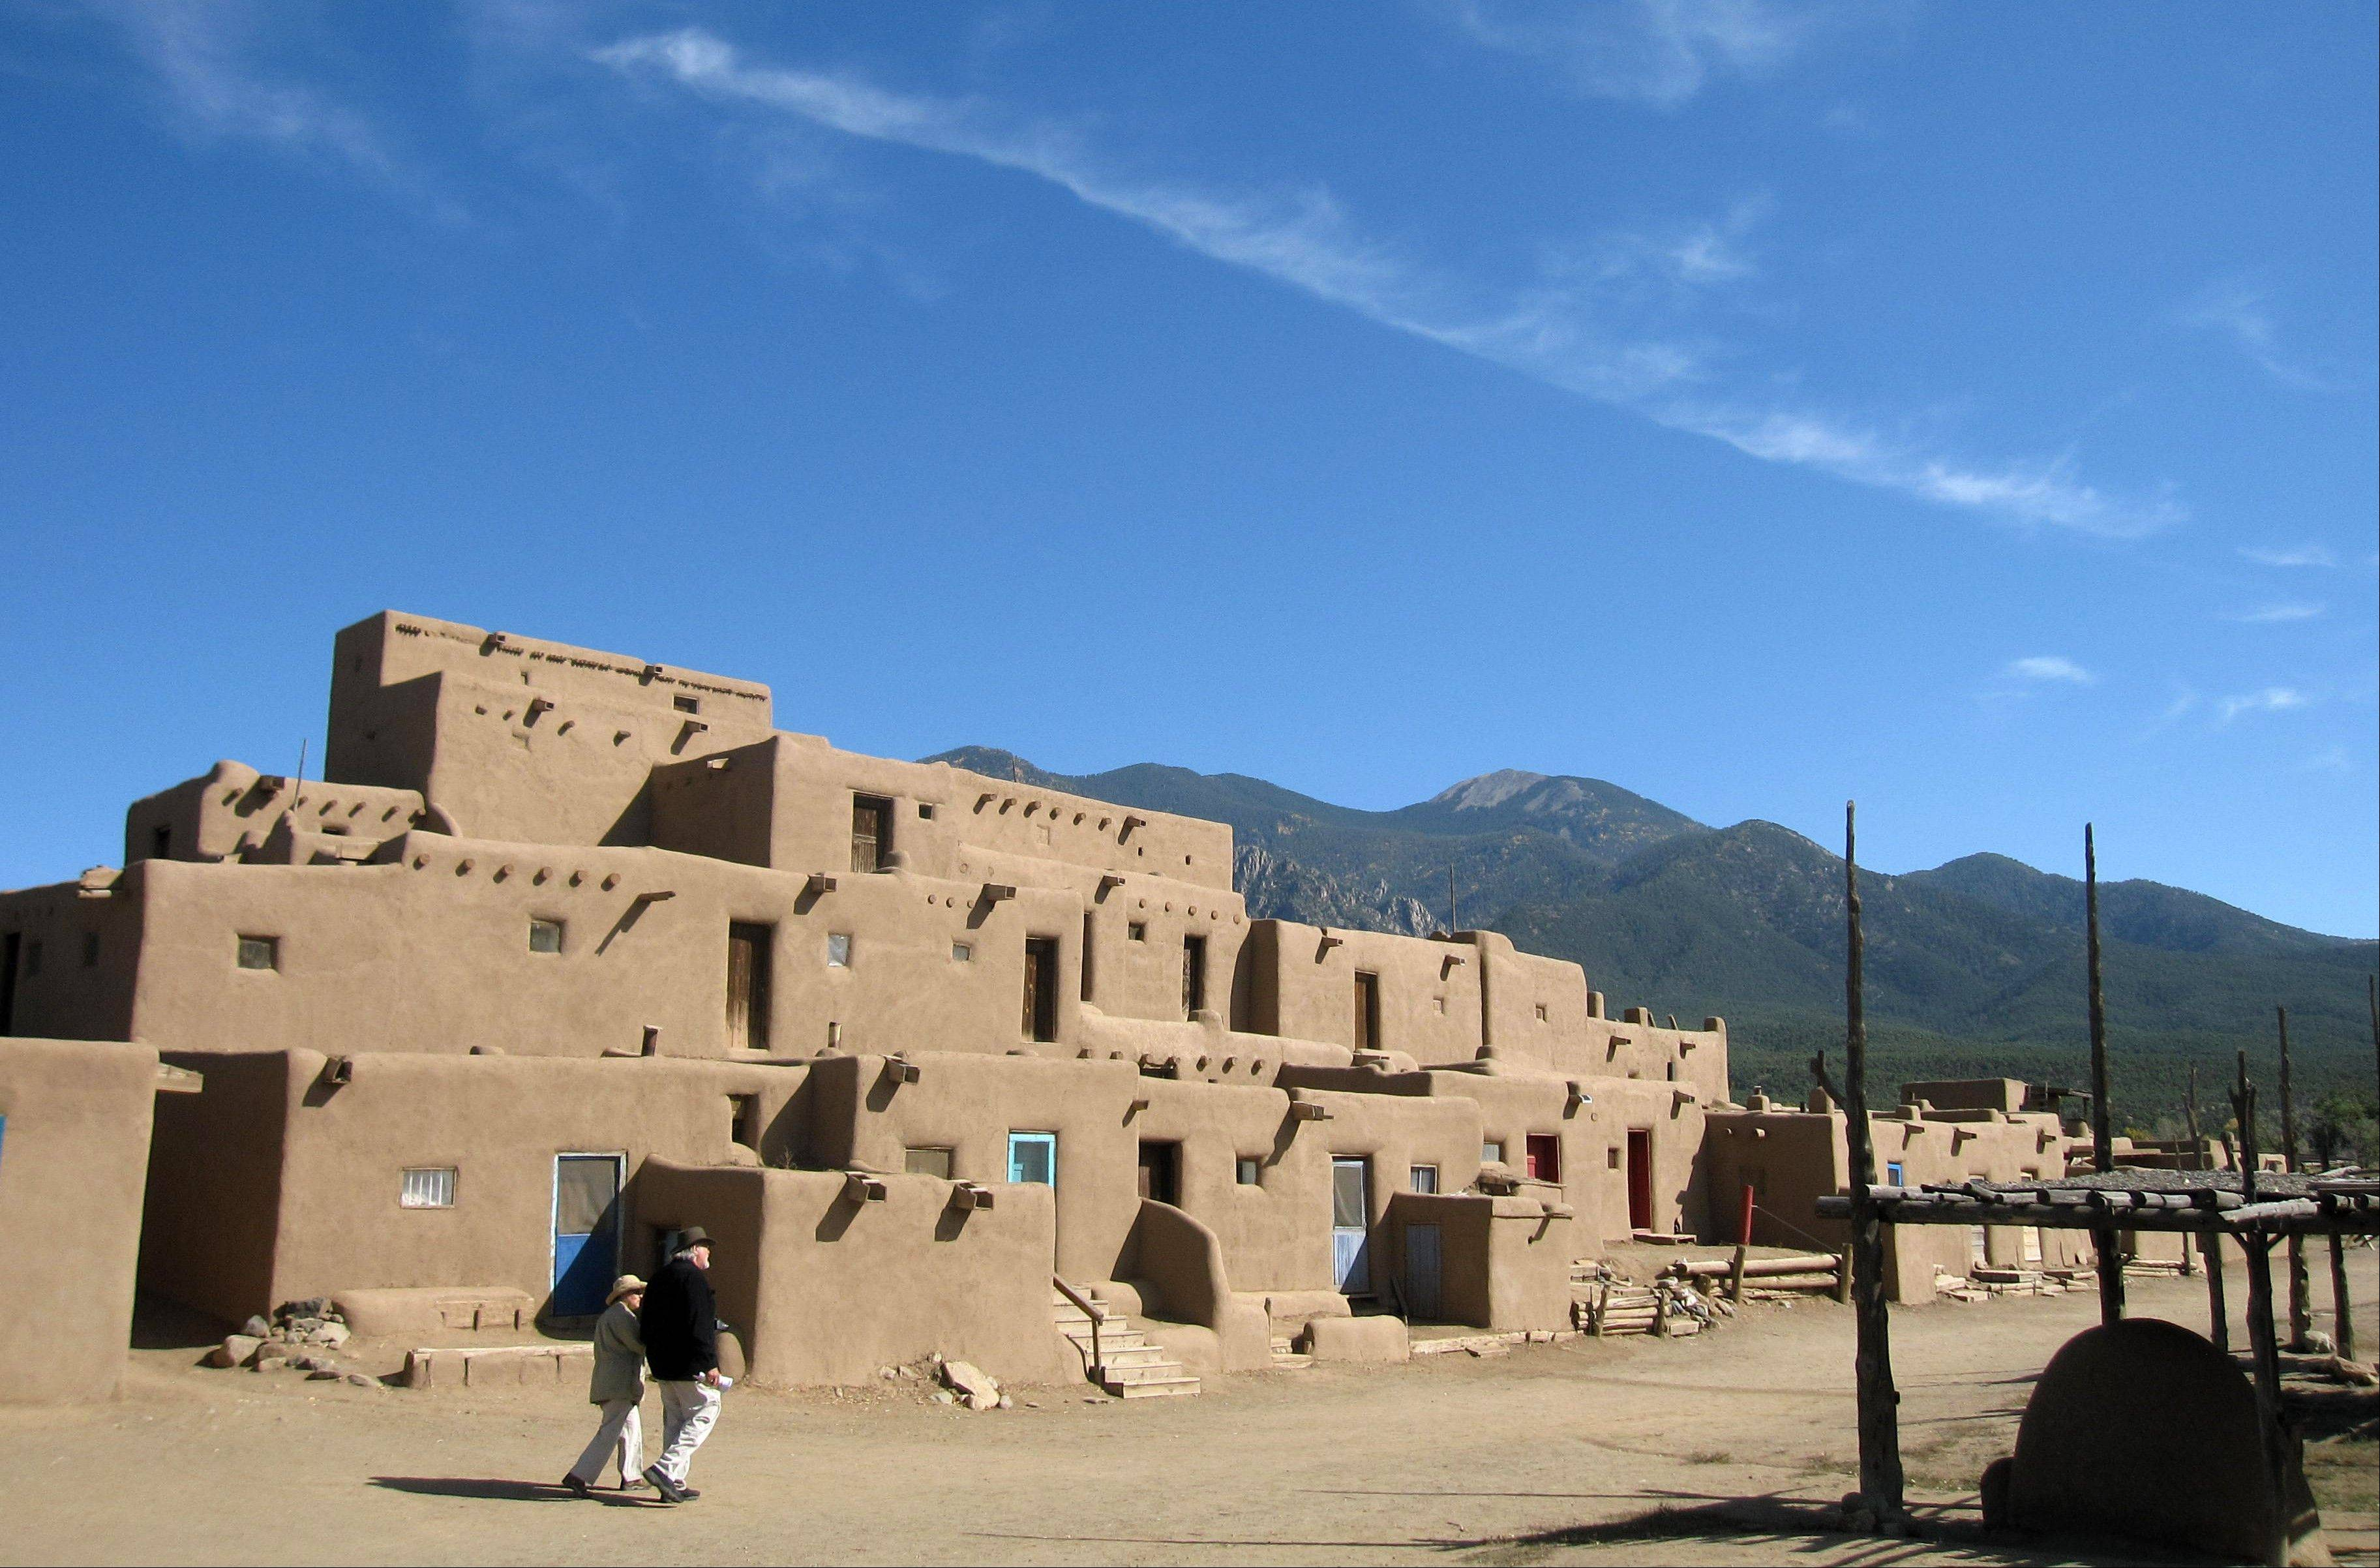 Adobe dwellings at the Taos Pueblo in Taos, N.M., a UNESCO World Heritage site where the Taos native people have lived for 1,000 years.